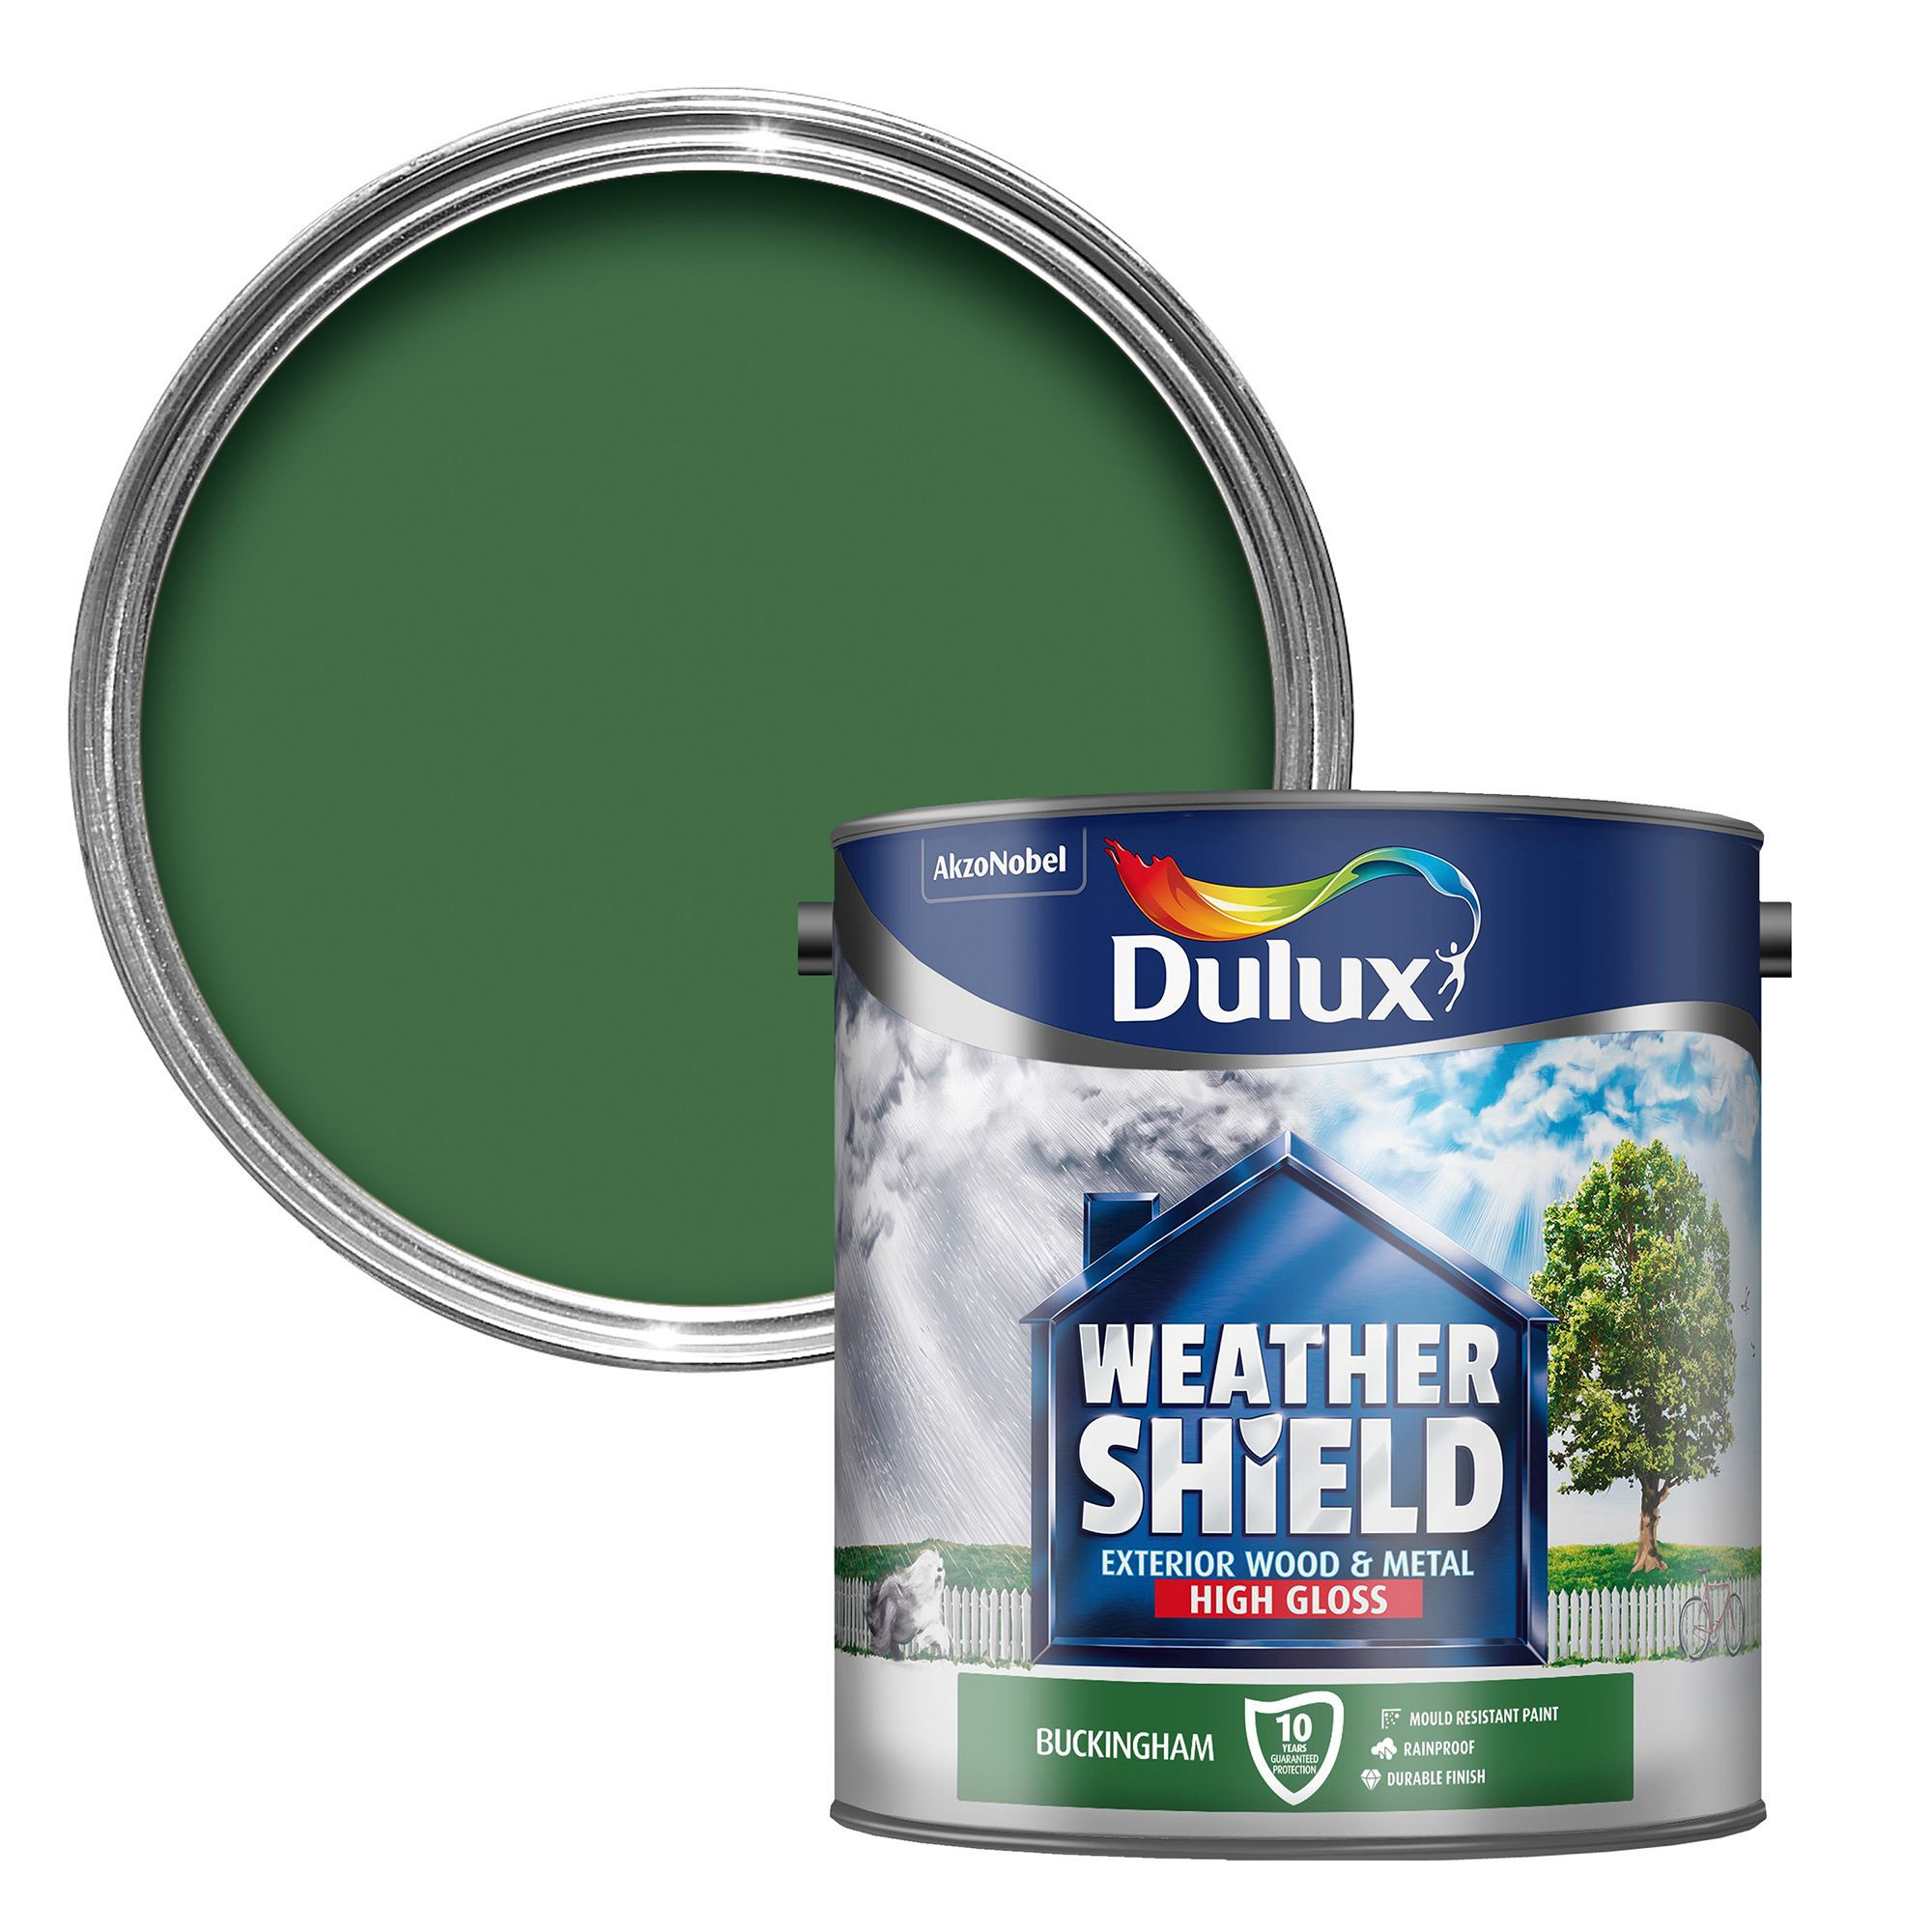 Dulux weathershield exterior buckingham green gloss wood metal paint 2 5l departments diy - Sadolin exterior wood paint image ...